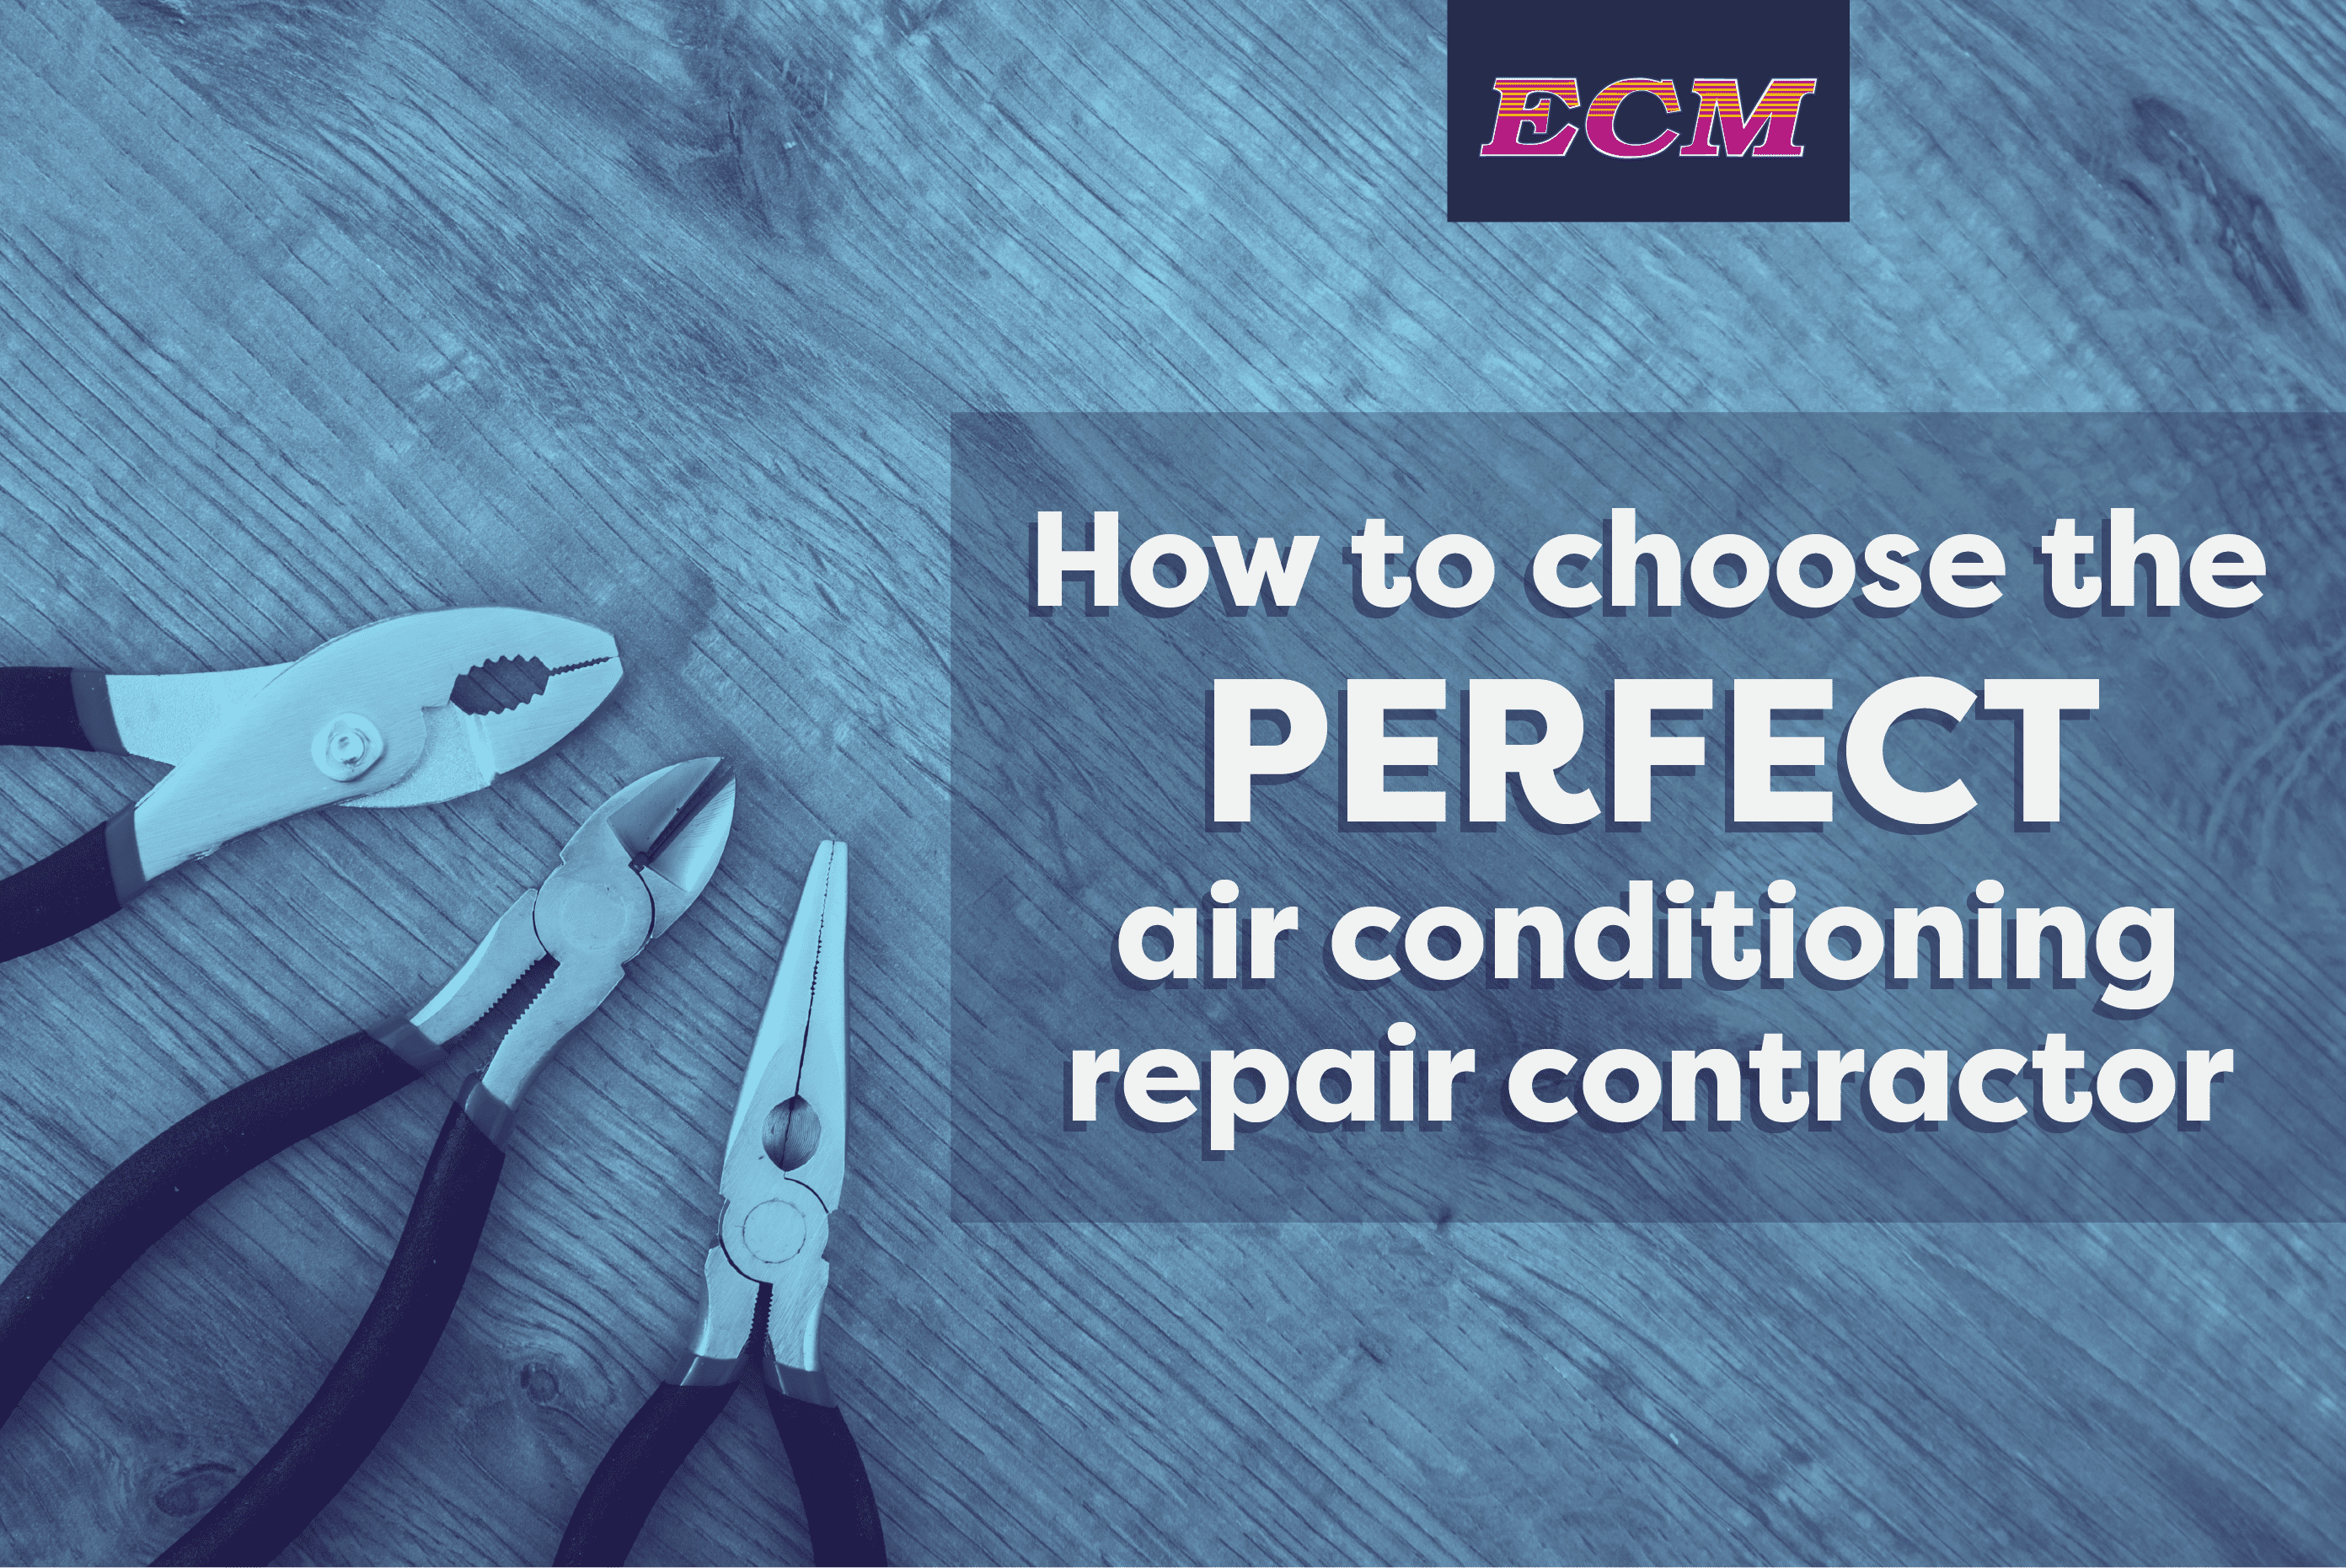 Choosing the Perfect AC Repair Contractor